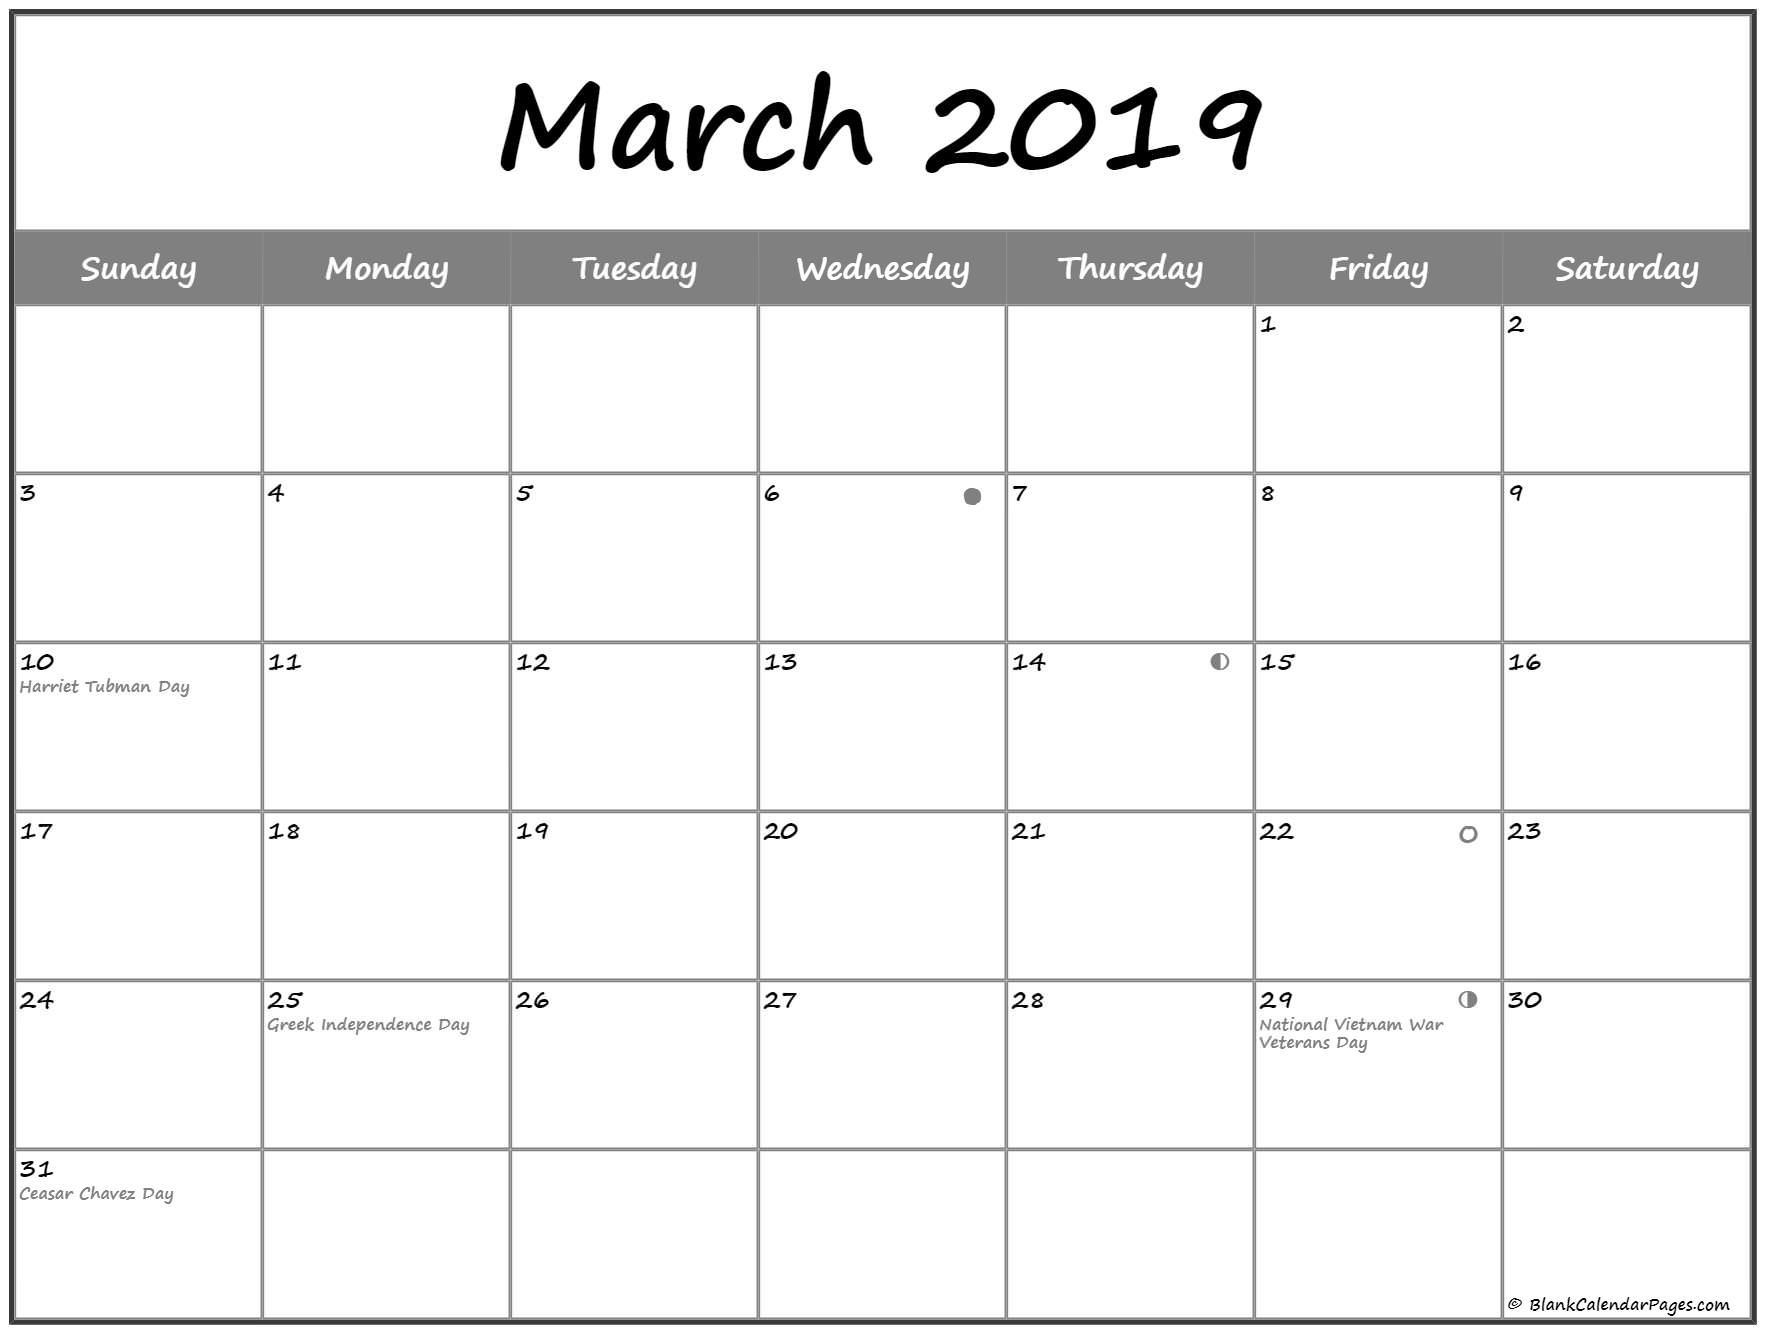 March 2019 Lunar Calendar Moon Phases | Free Monthly Calendar  Desktop Calendar With Lunar Cycle